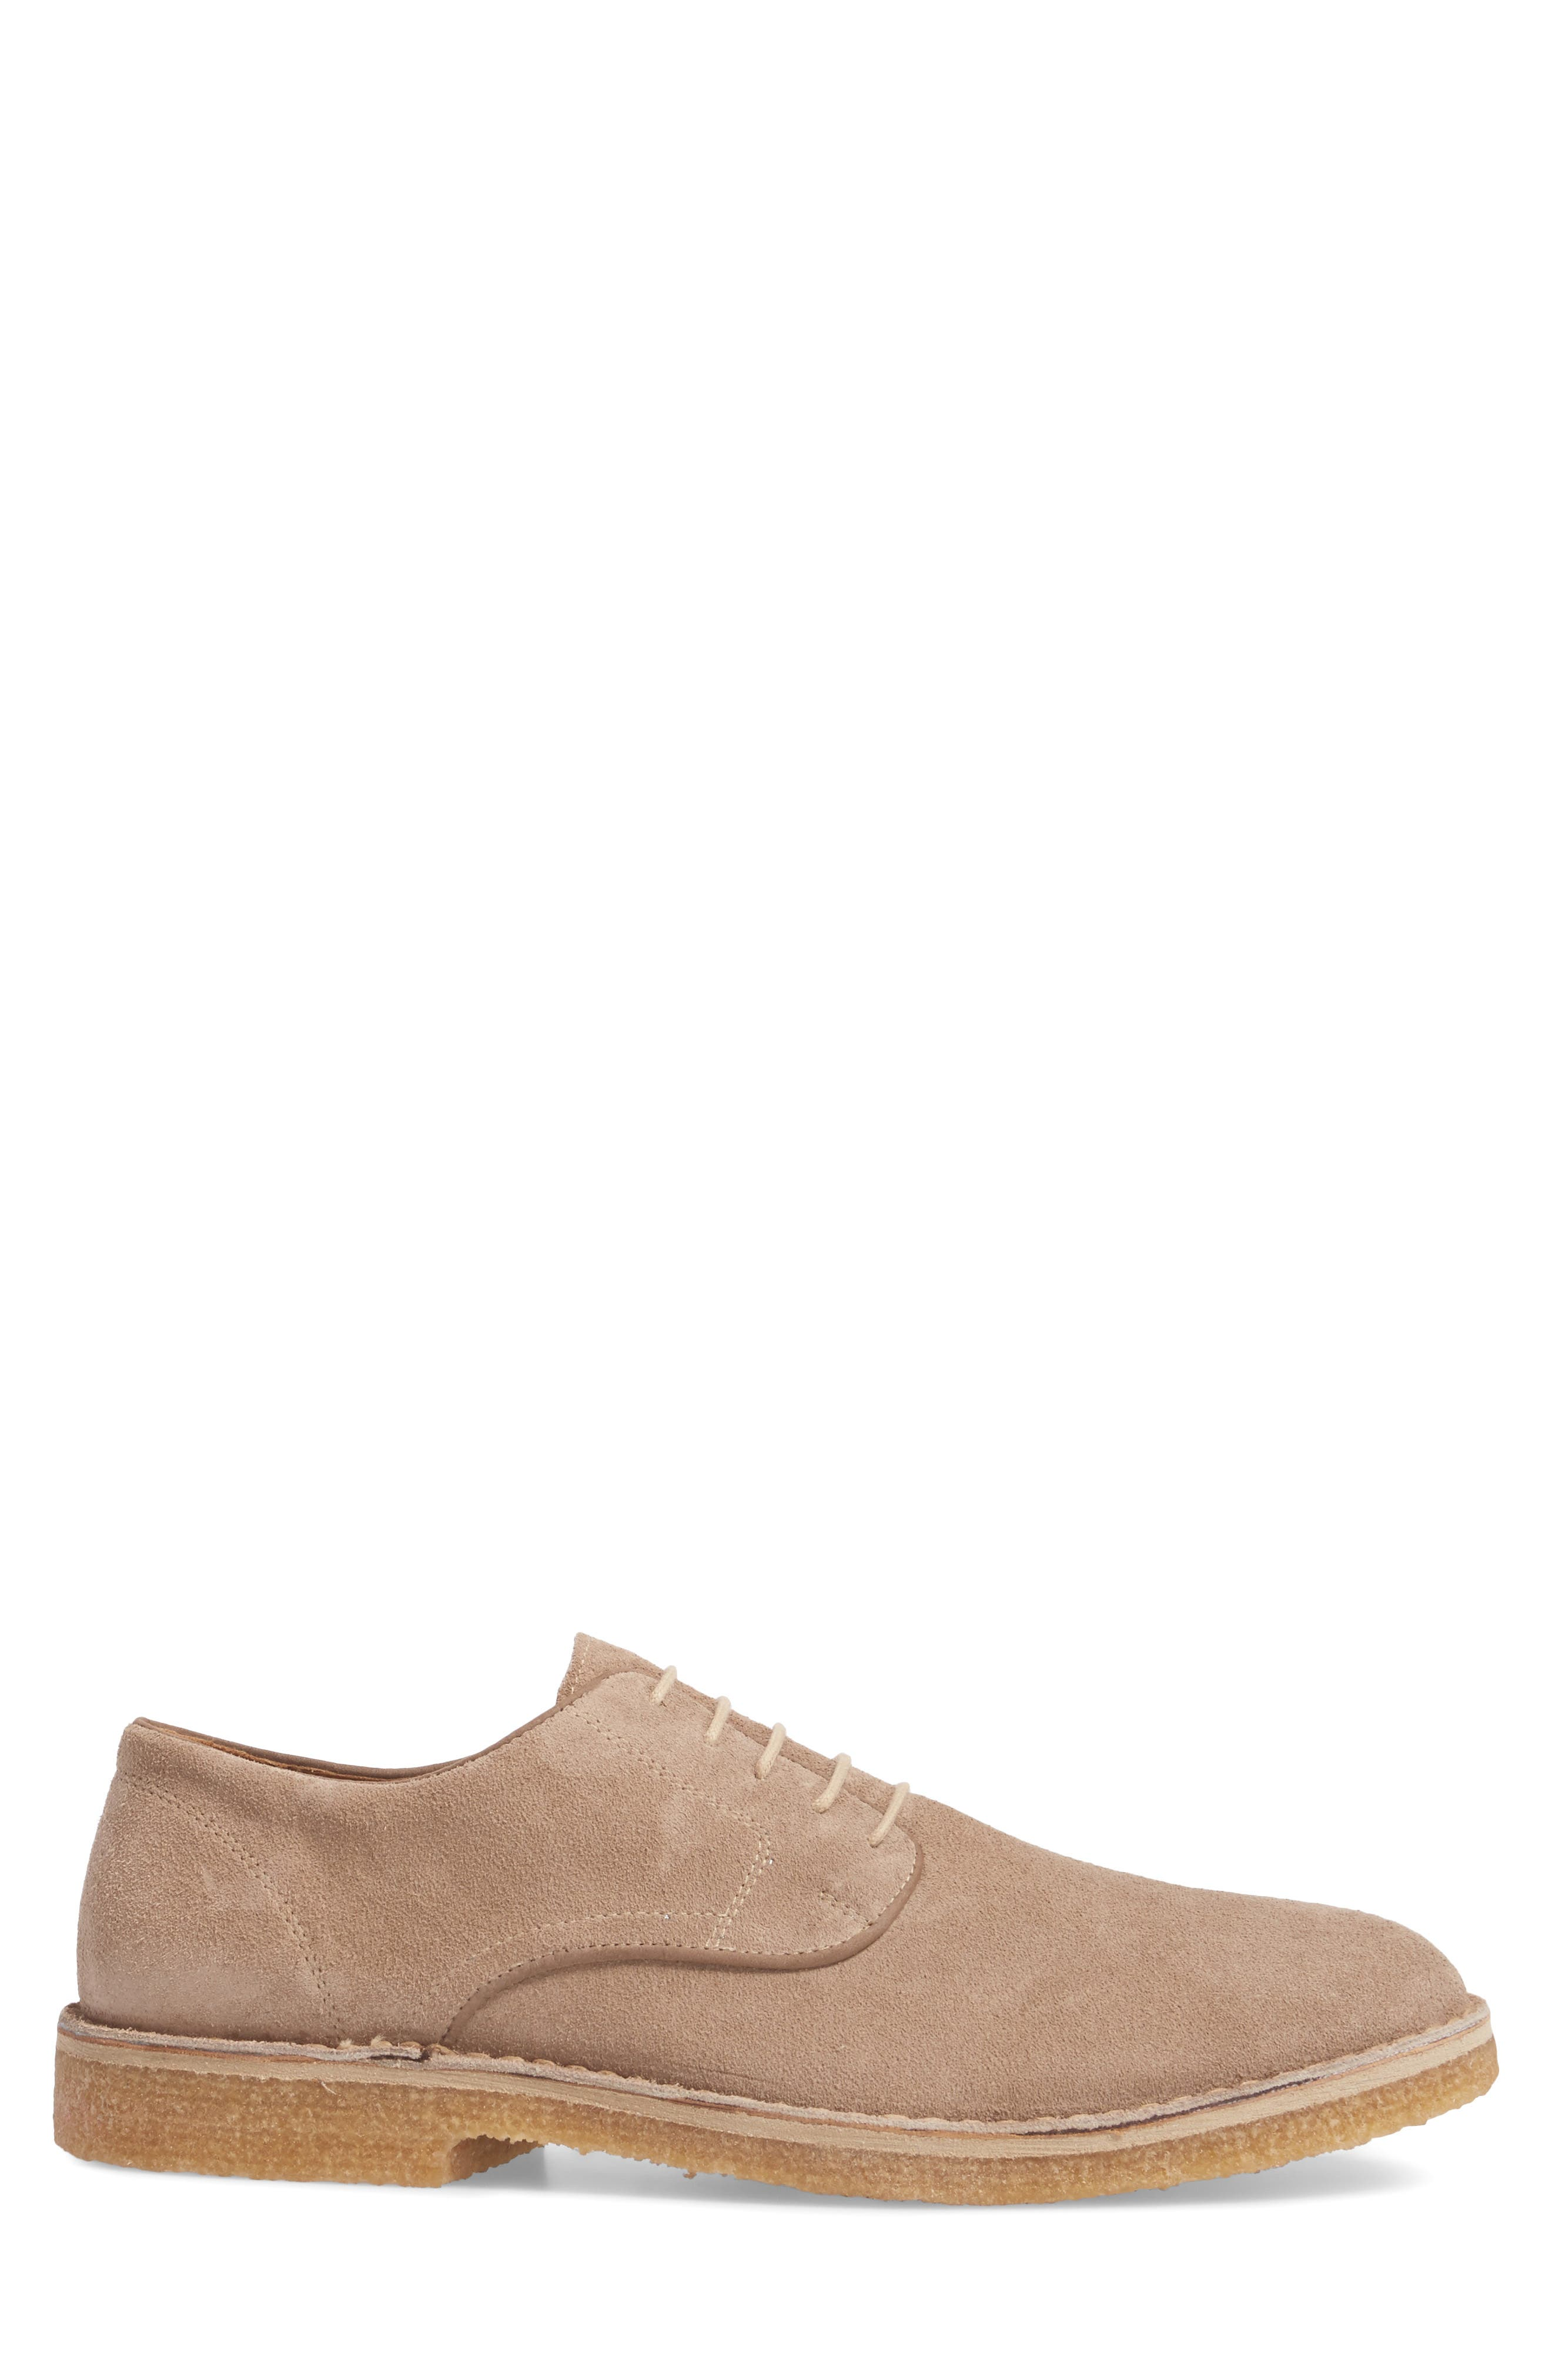 Crescent Buck Shoe,                             Alternate thumbnail 3, color,                             TAN SUEDE